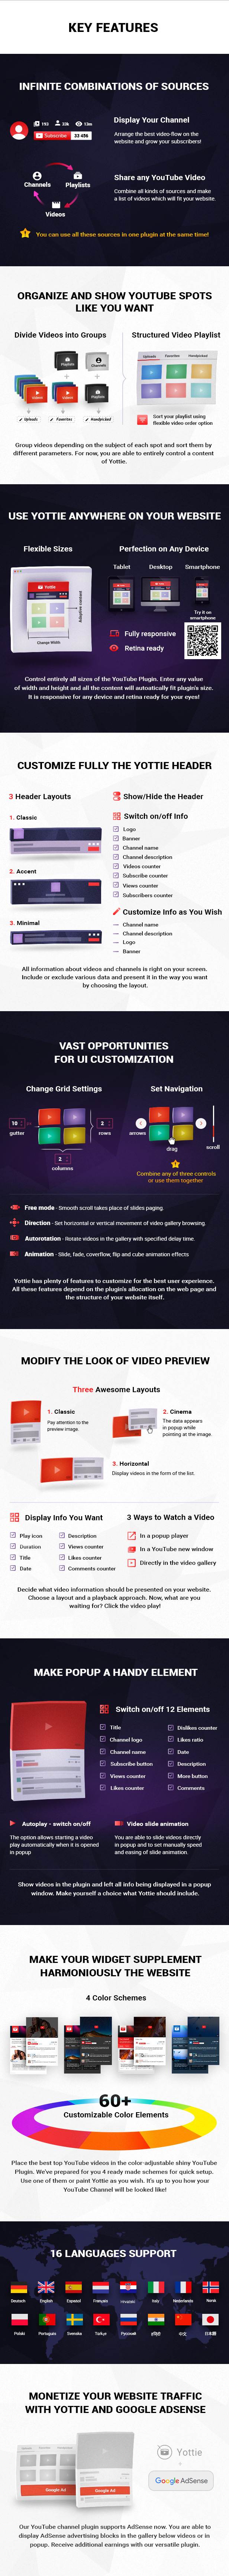 Key features of Yottie- wordpress youtube gallery plugin